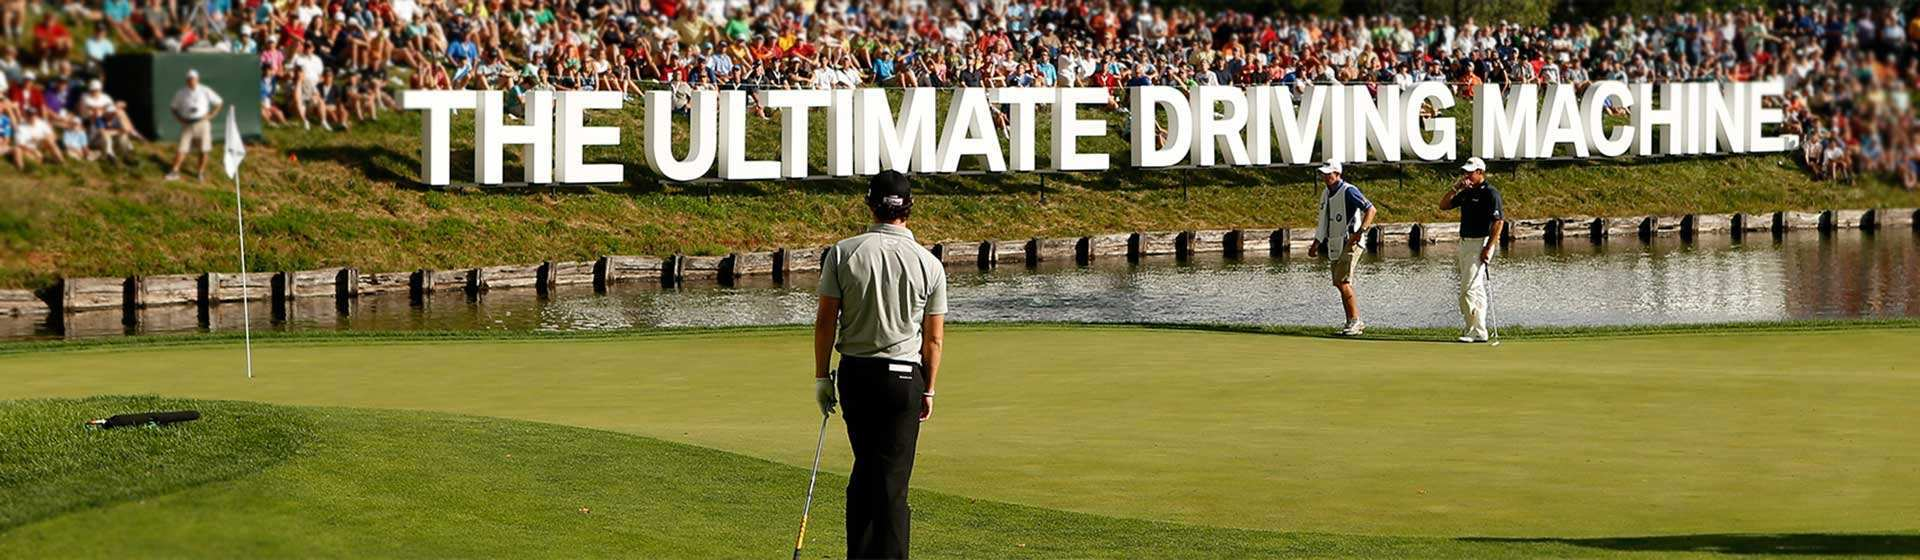 83 All New BMW Championship 2020 Location New Concept by BMW Championship 2020 Location